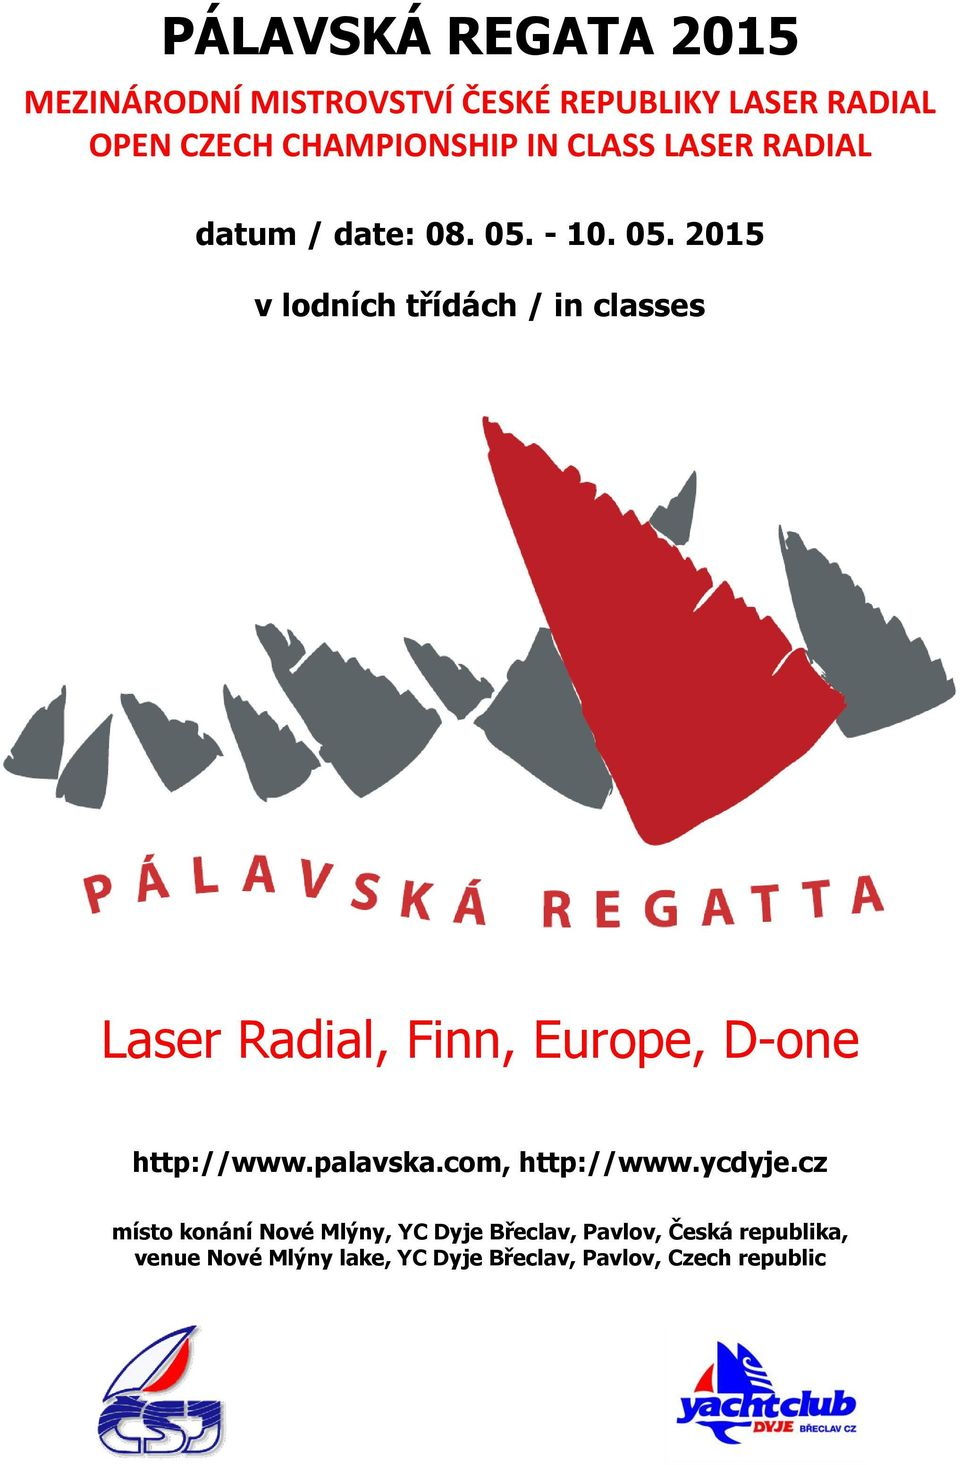 - 10. 05. 2015 v lodních třídách / in classes Laser Radial, Finn, Europe, D-one, http://www.